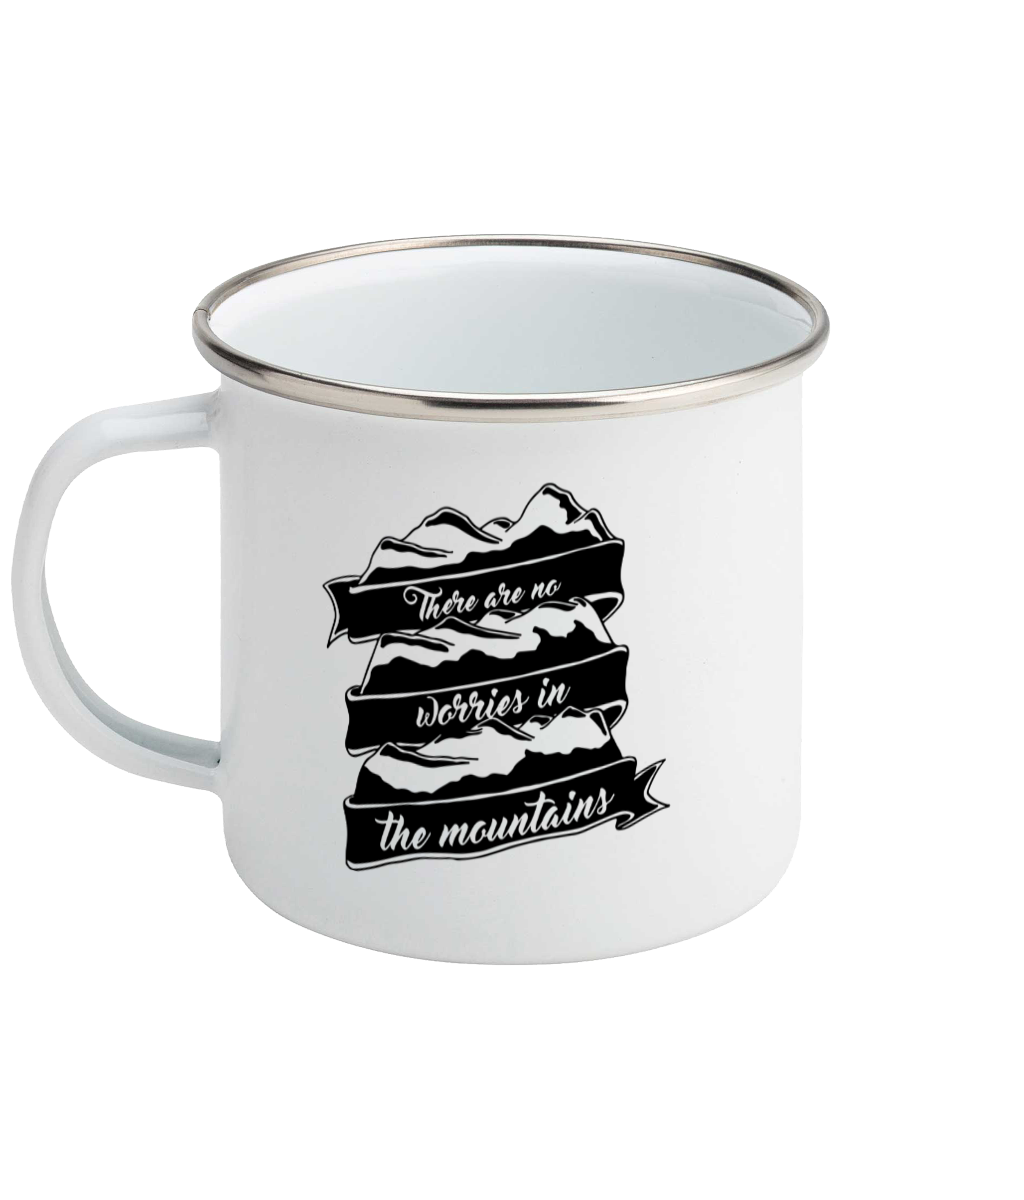 There Are No Worries In The Mountains - Enamel Mug, Suggested Products, Pen and Ink Studios Adventure Clothing